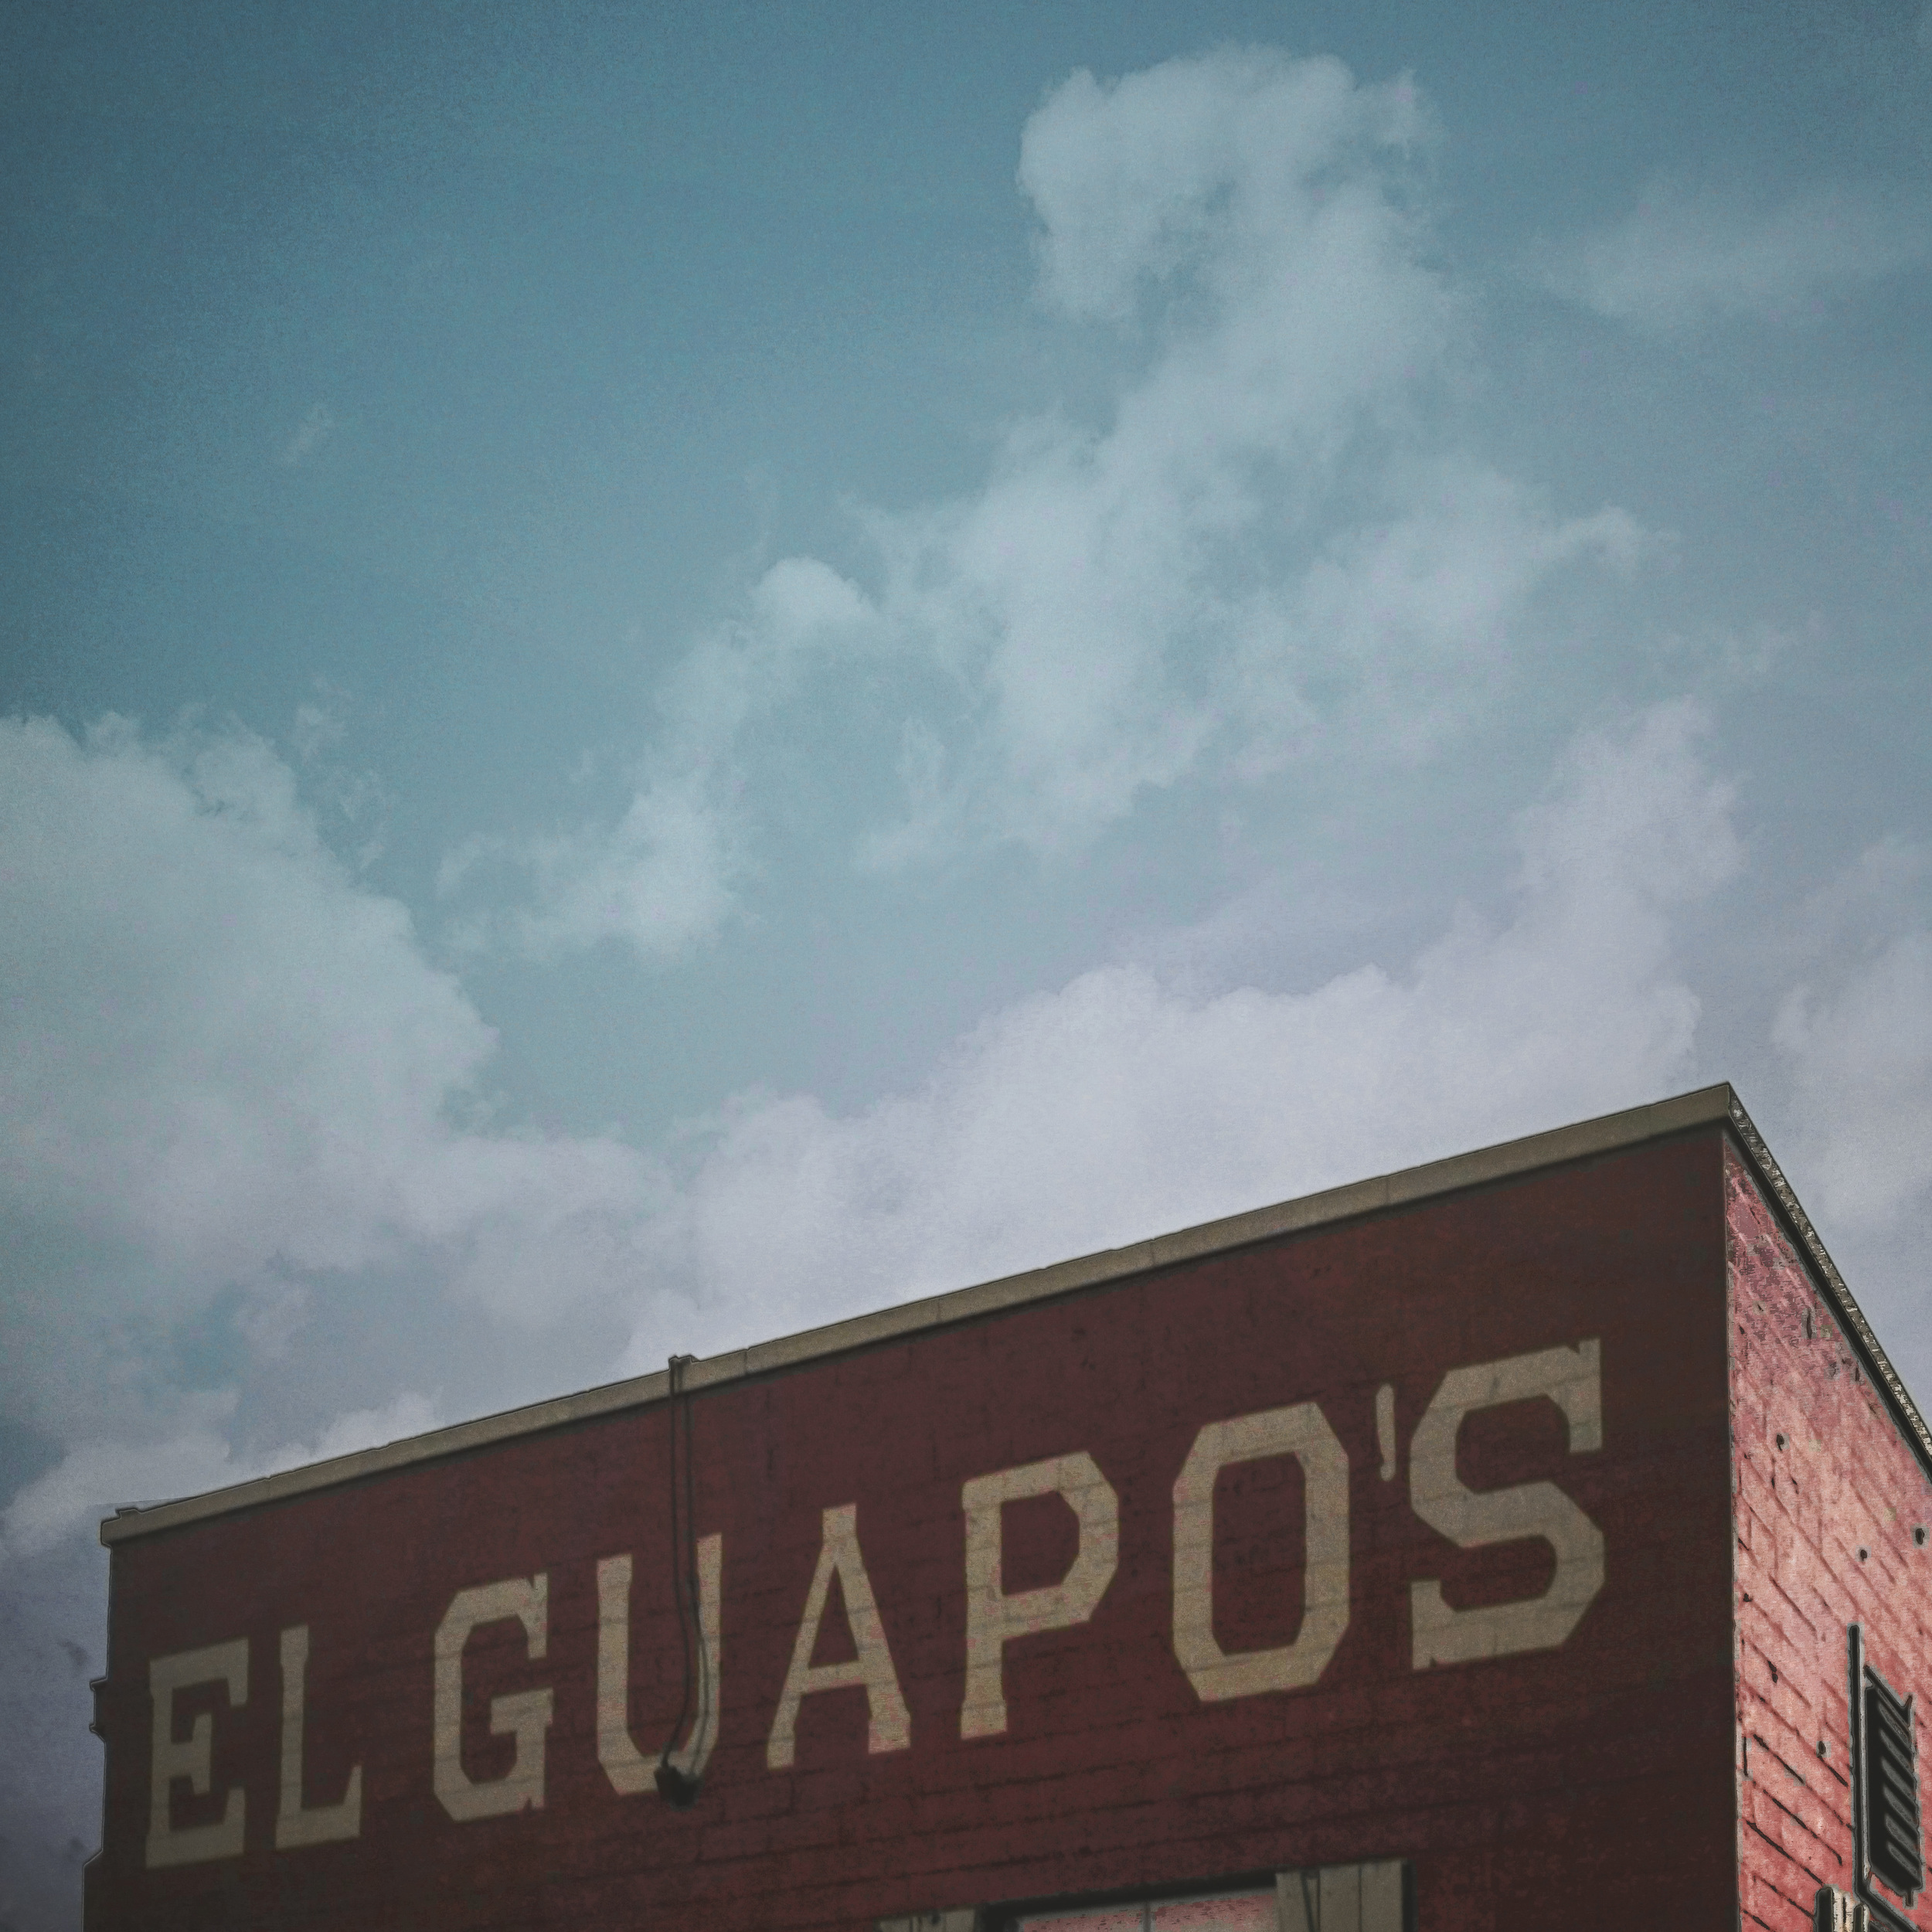 While we haven't been inside in a while (sorry, Mike). The exterior of El Guapo's caught one reader's eye on their way down to DIME for First Friday last week. It's a great walk from the square, if you haven't tried it yet.